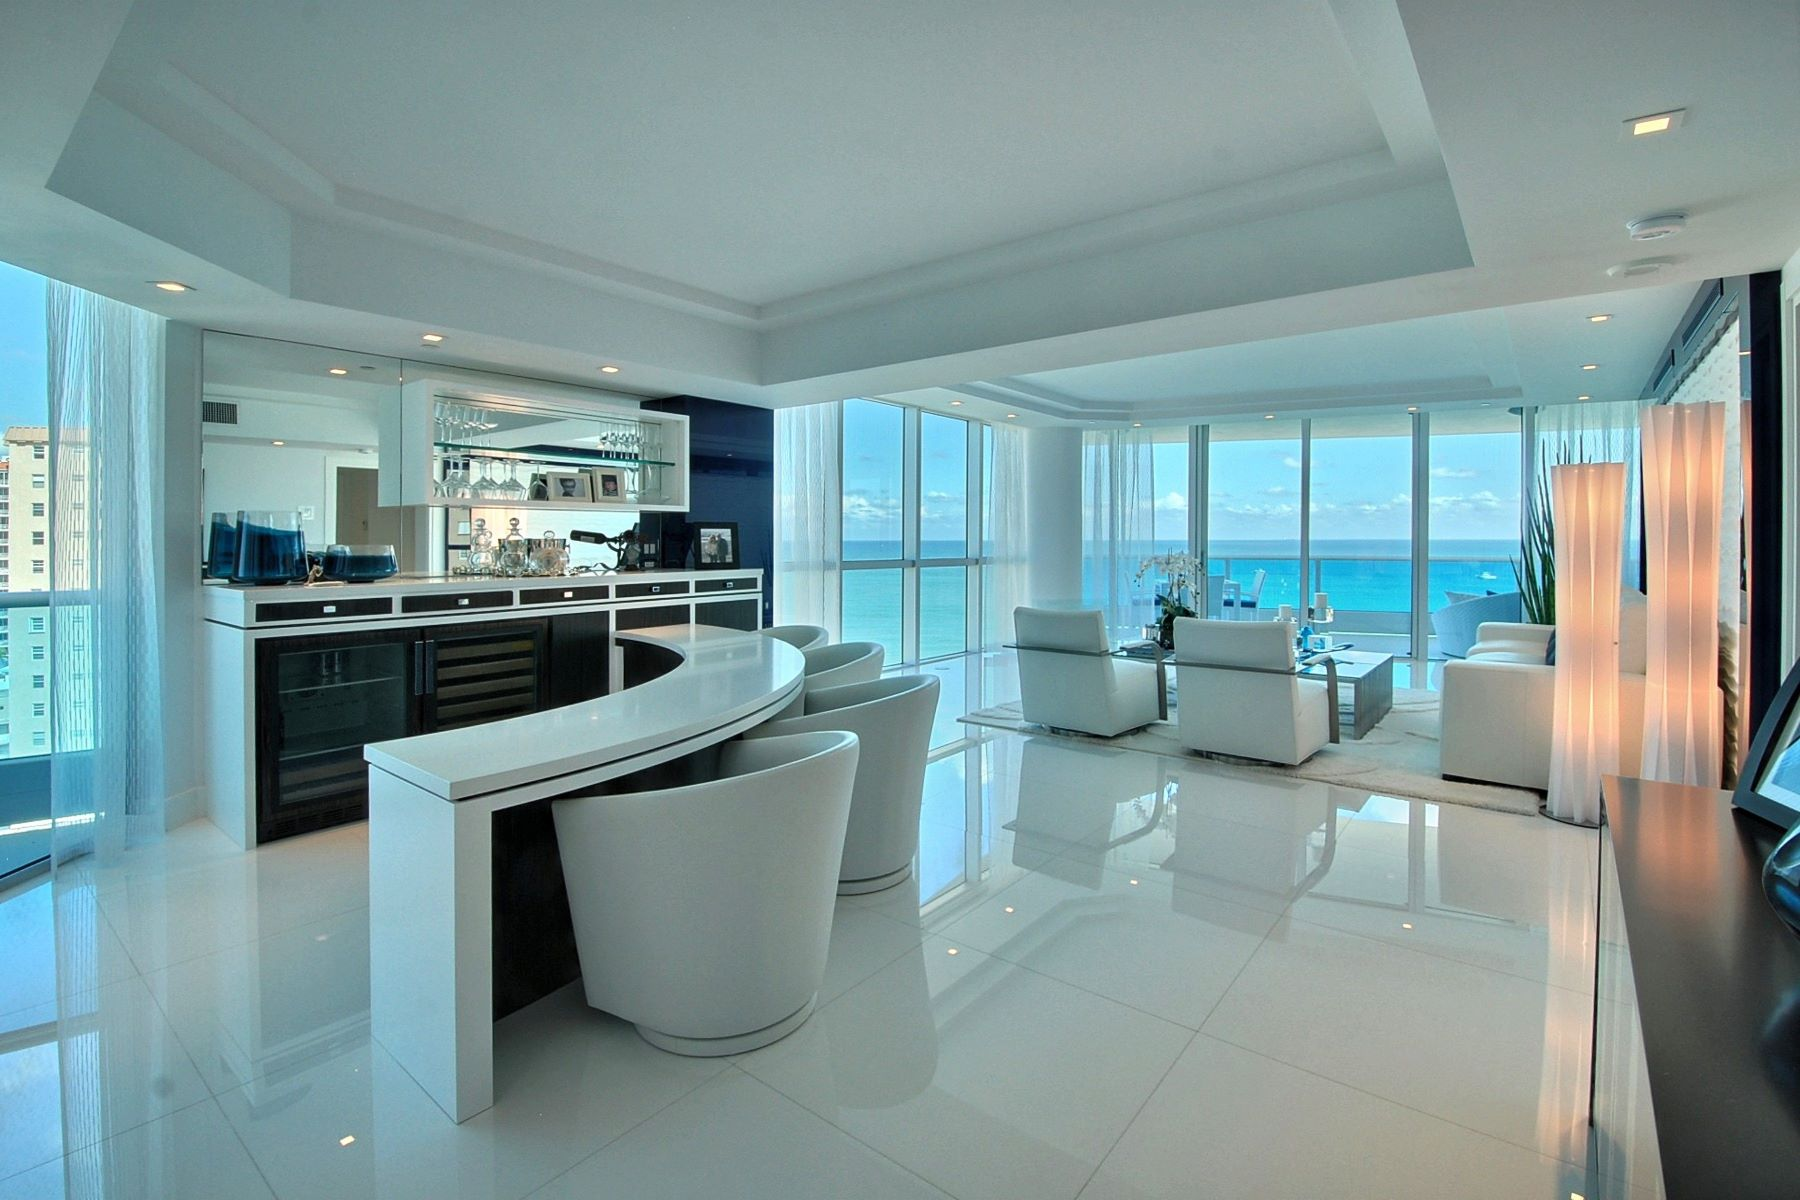 condominiums for Active at 1600 S Ocean Blvd 1004 Lauderdale By The Sea, Florida 33062 United States